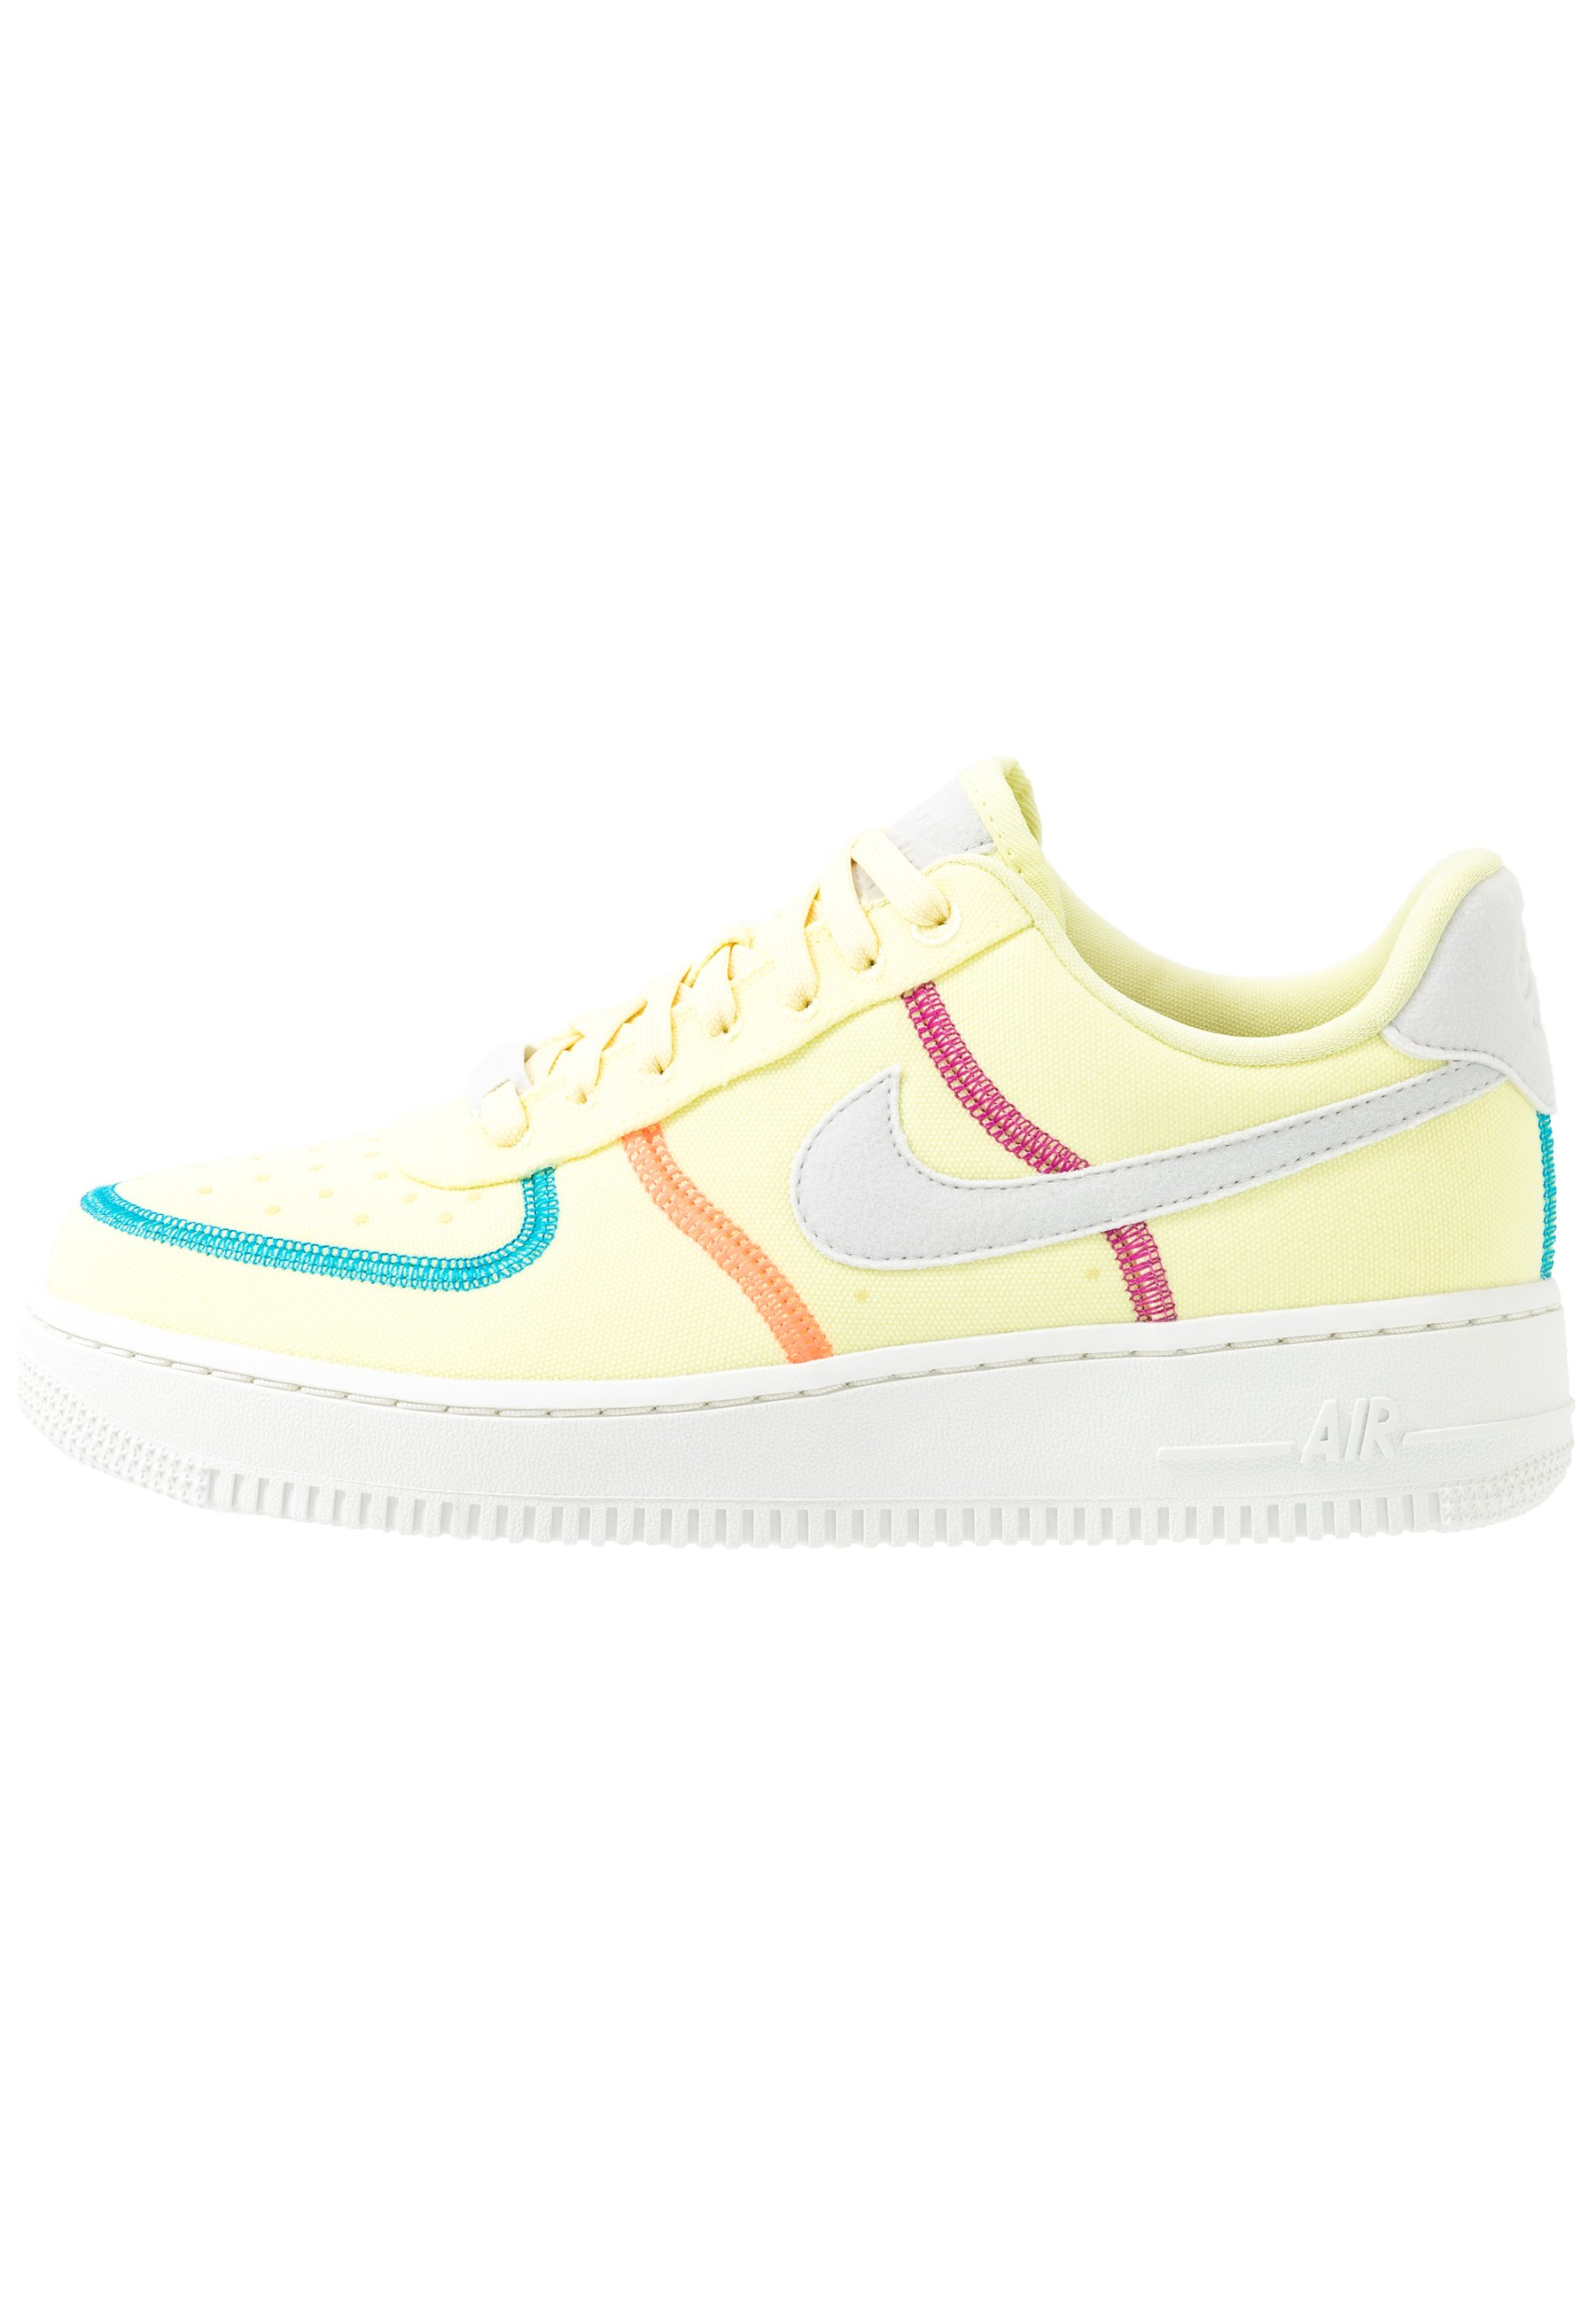 air force 1 basse verdi